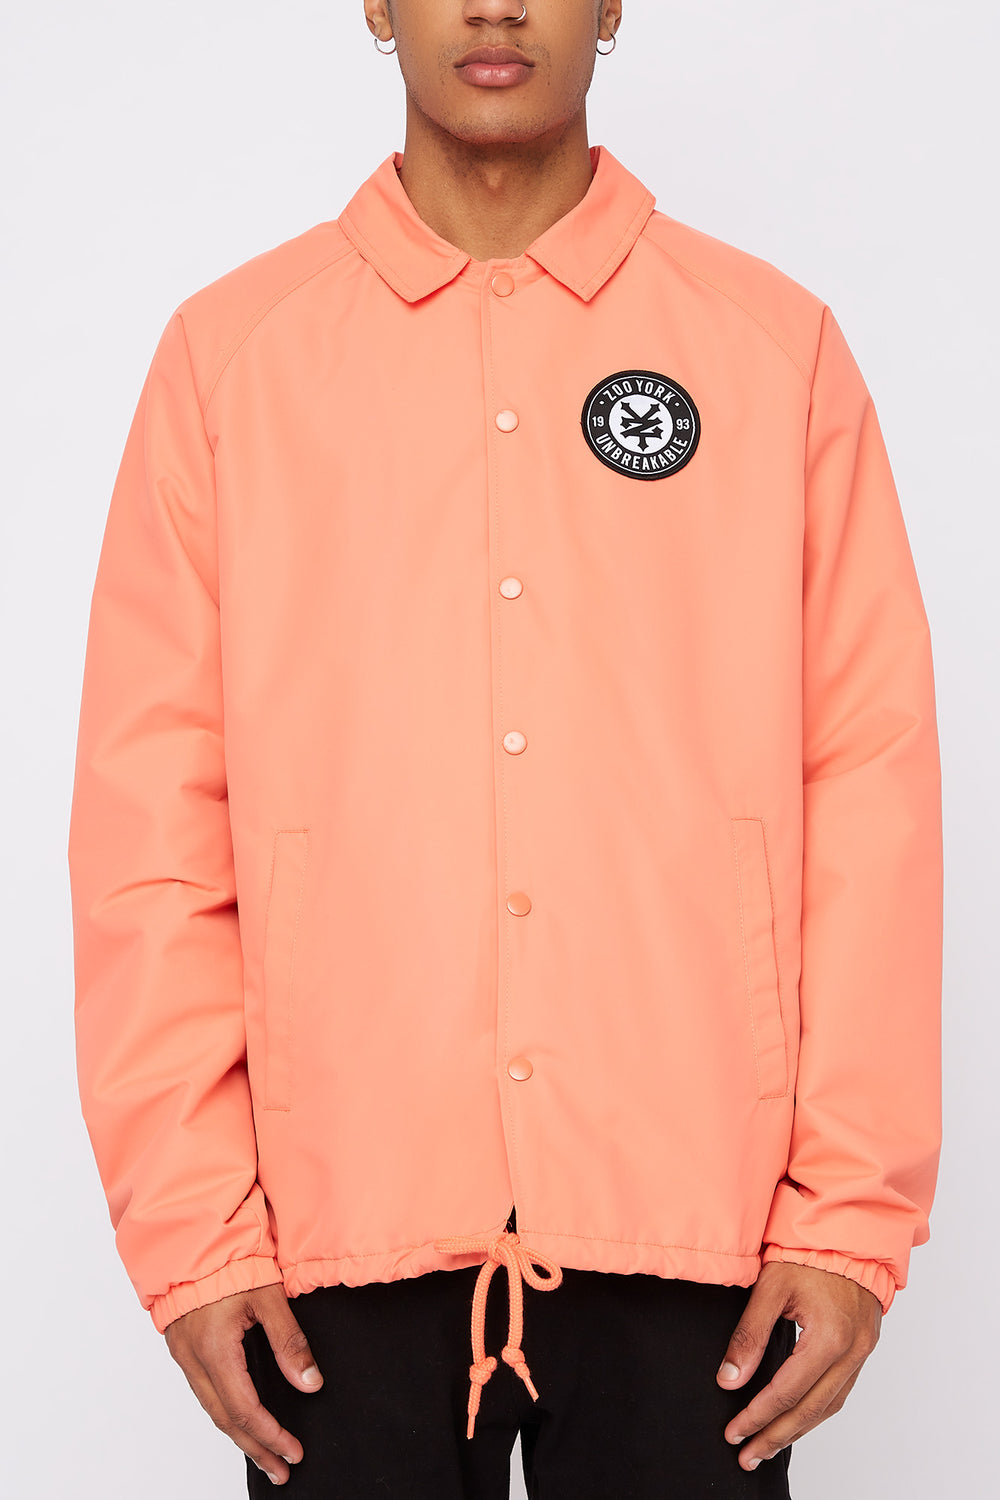 Zoo York Mens Patch Logo Coach Jacket Coral